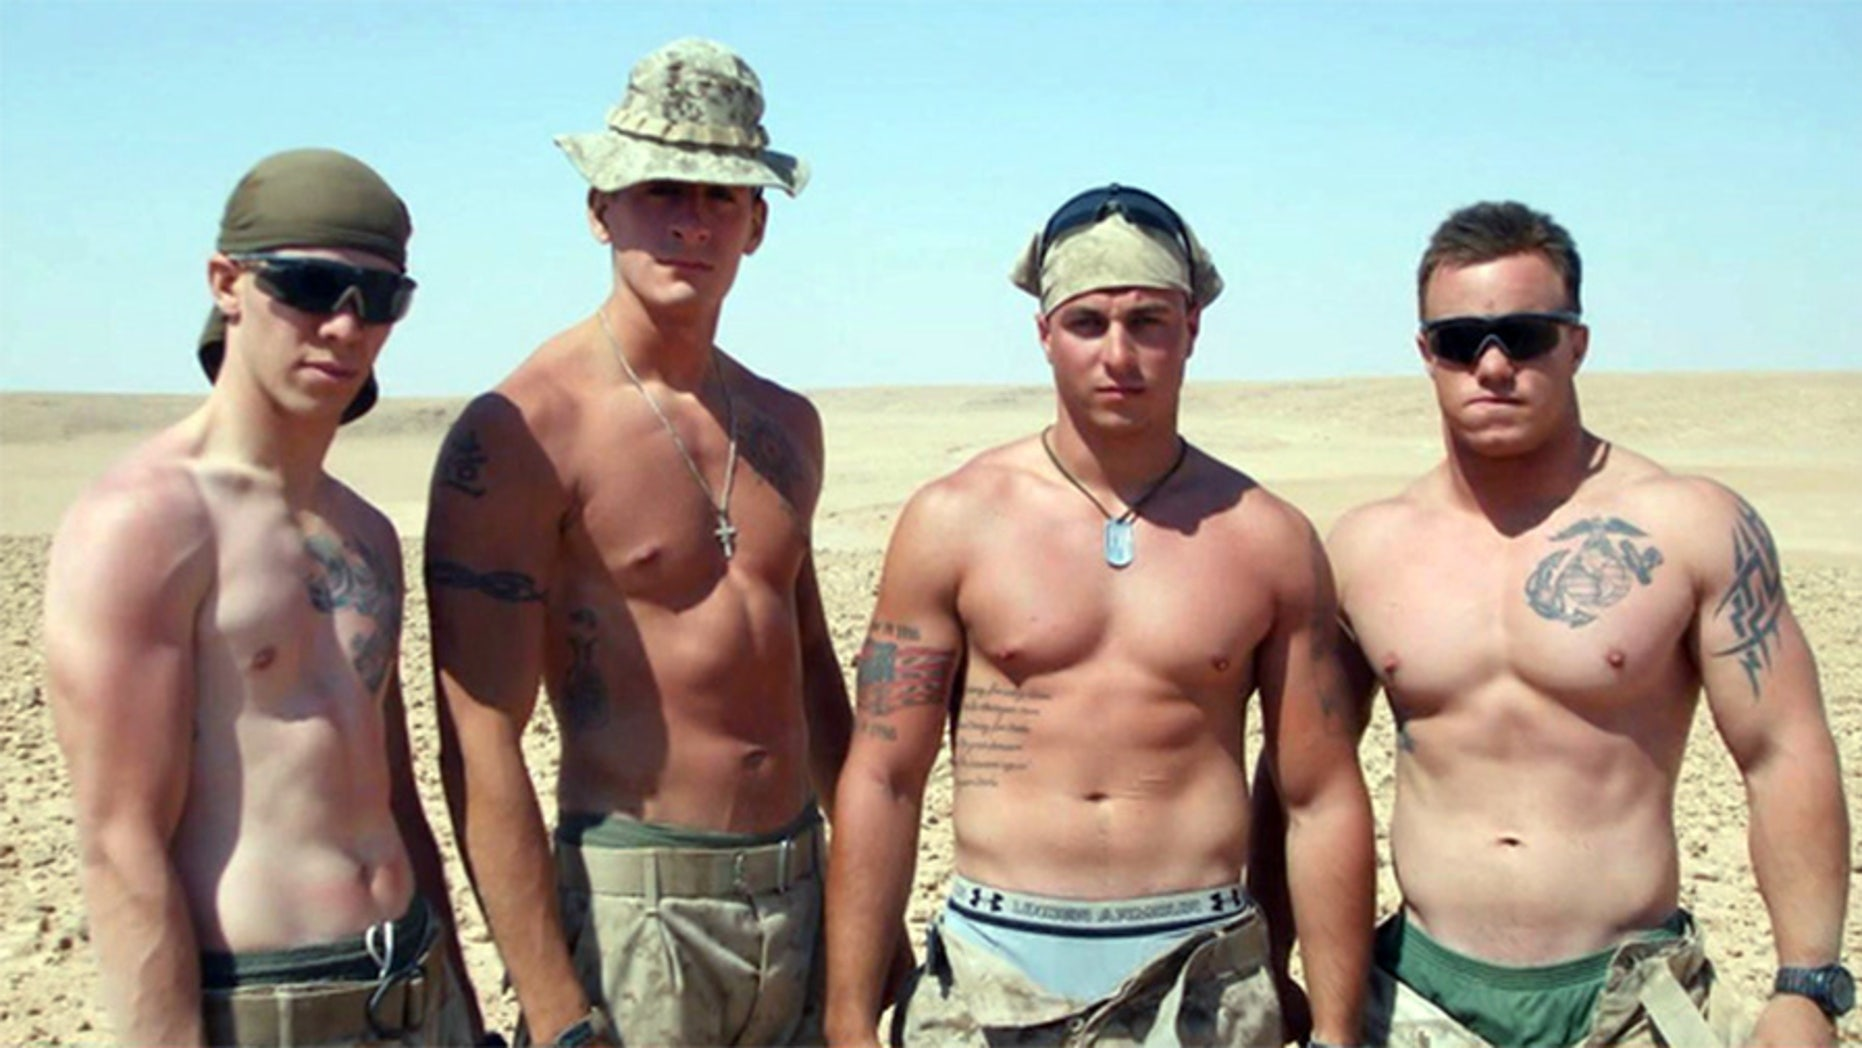 Marine Ben Zellman (l) has been identified as the Marine who owned a camera with photos from Iraq that was found in Washington nine years ago. (Fox 5 DC)